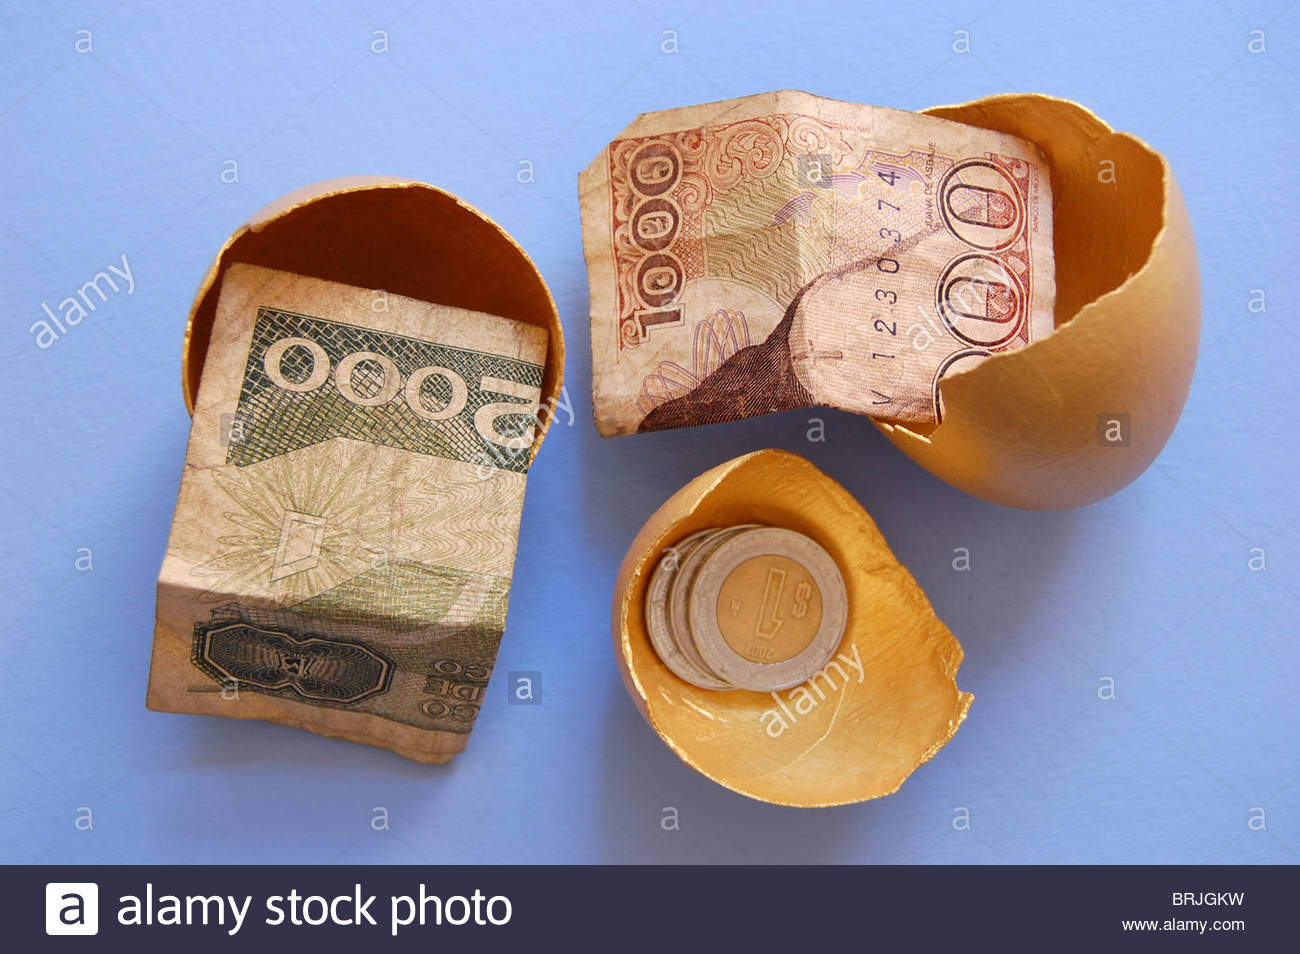 closeup overhead tabletop view three gold golden egg shells containing paper money currency depicting the savings - Stock Image